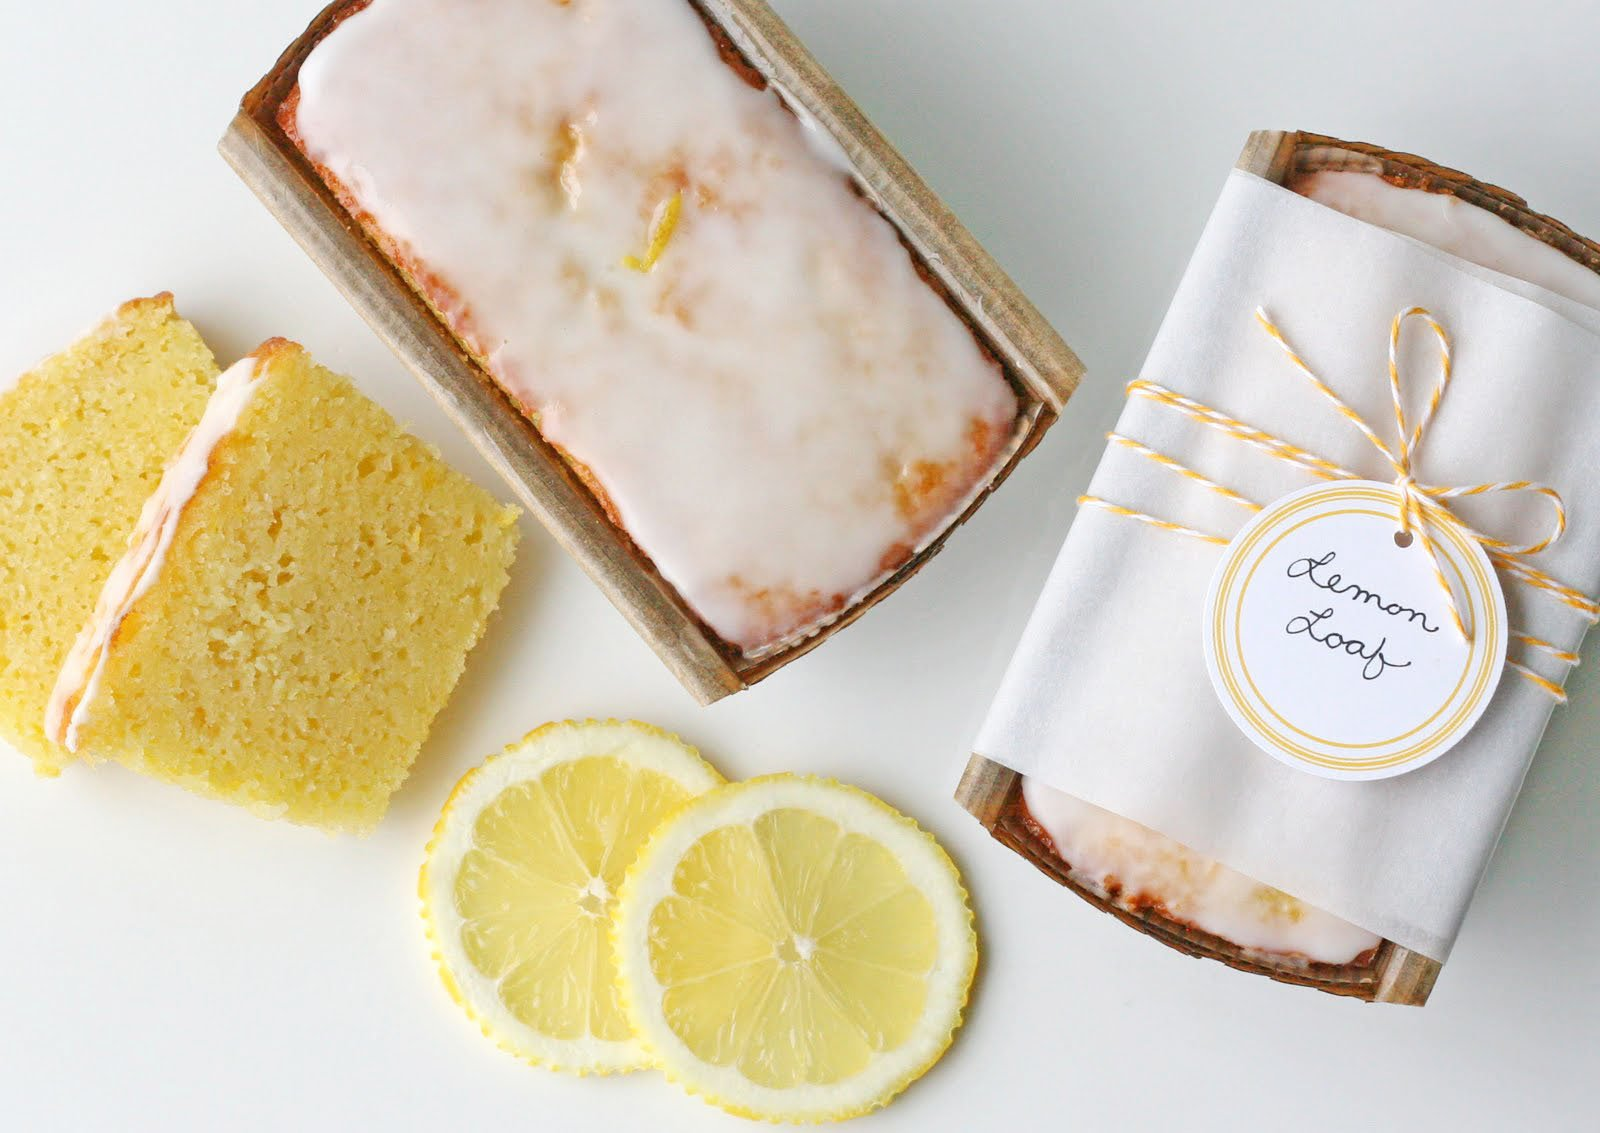 lemon bread recipe with full loaf and slices of lemon bread on white background